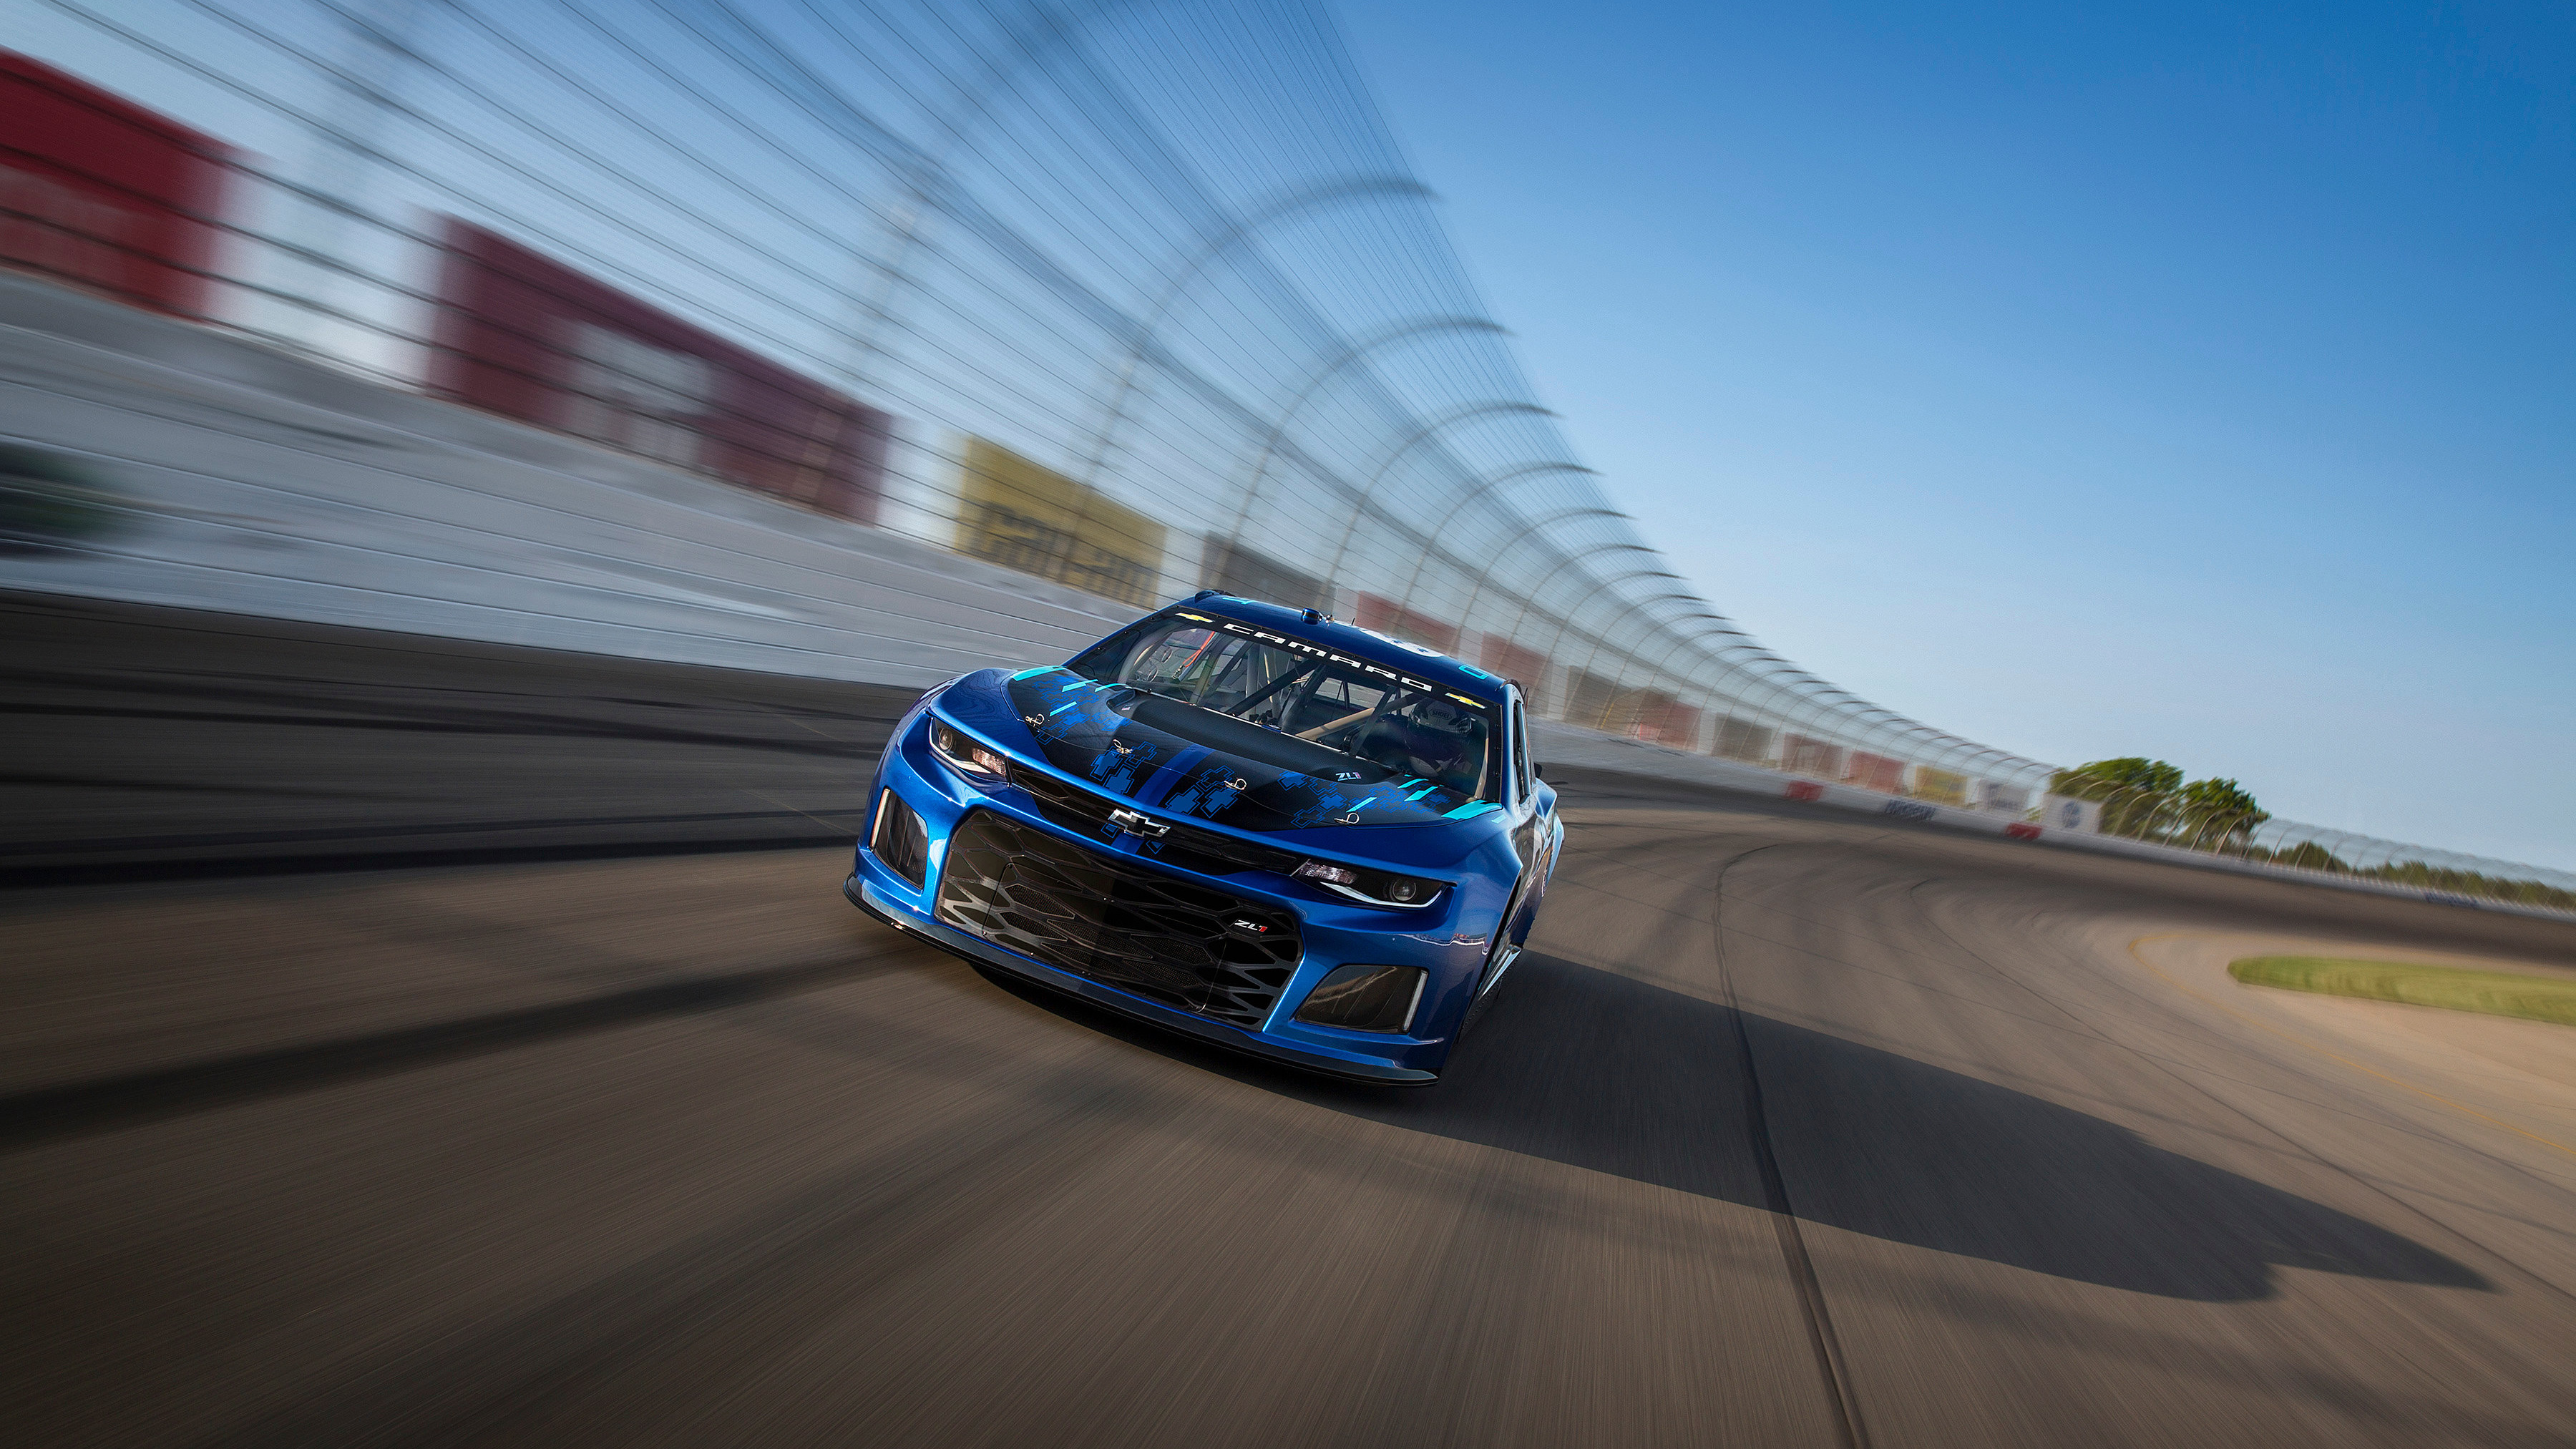 2018 Chevrolet Camaro Zl1 Nascar Race Car 2 Wallpaper Hd